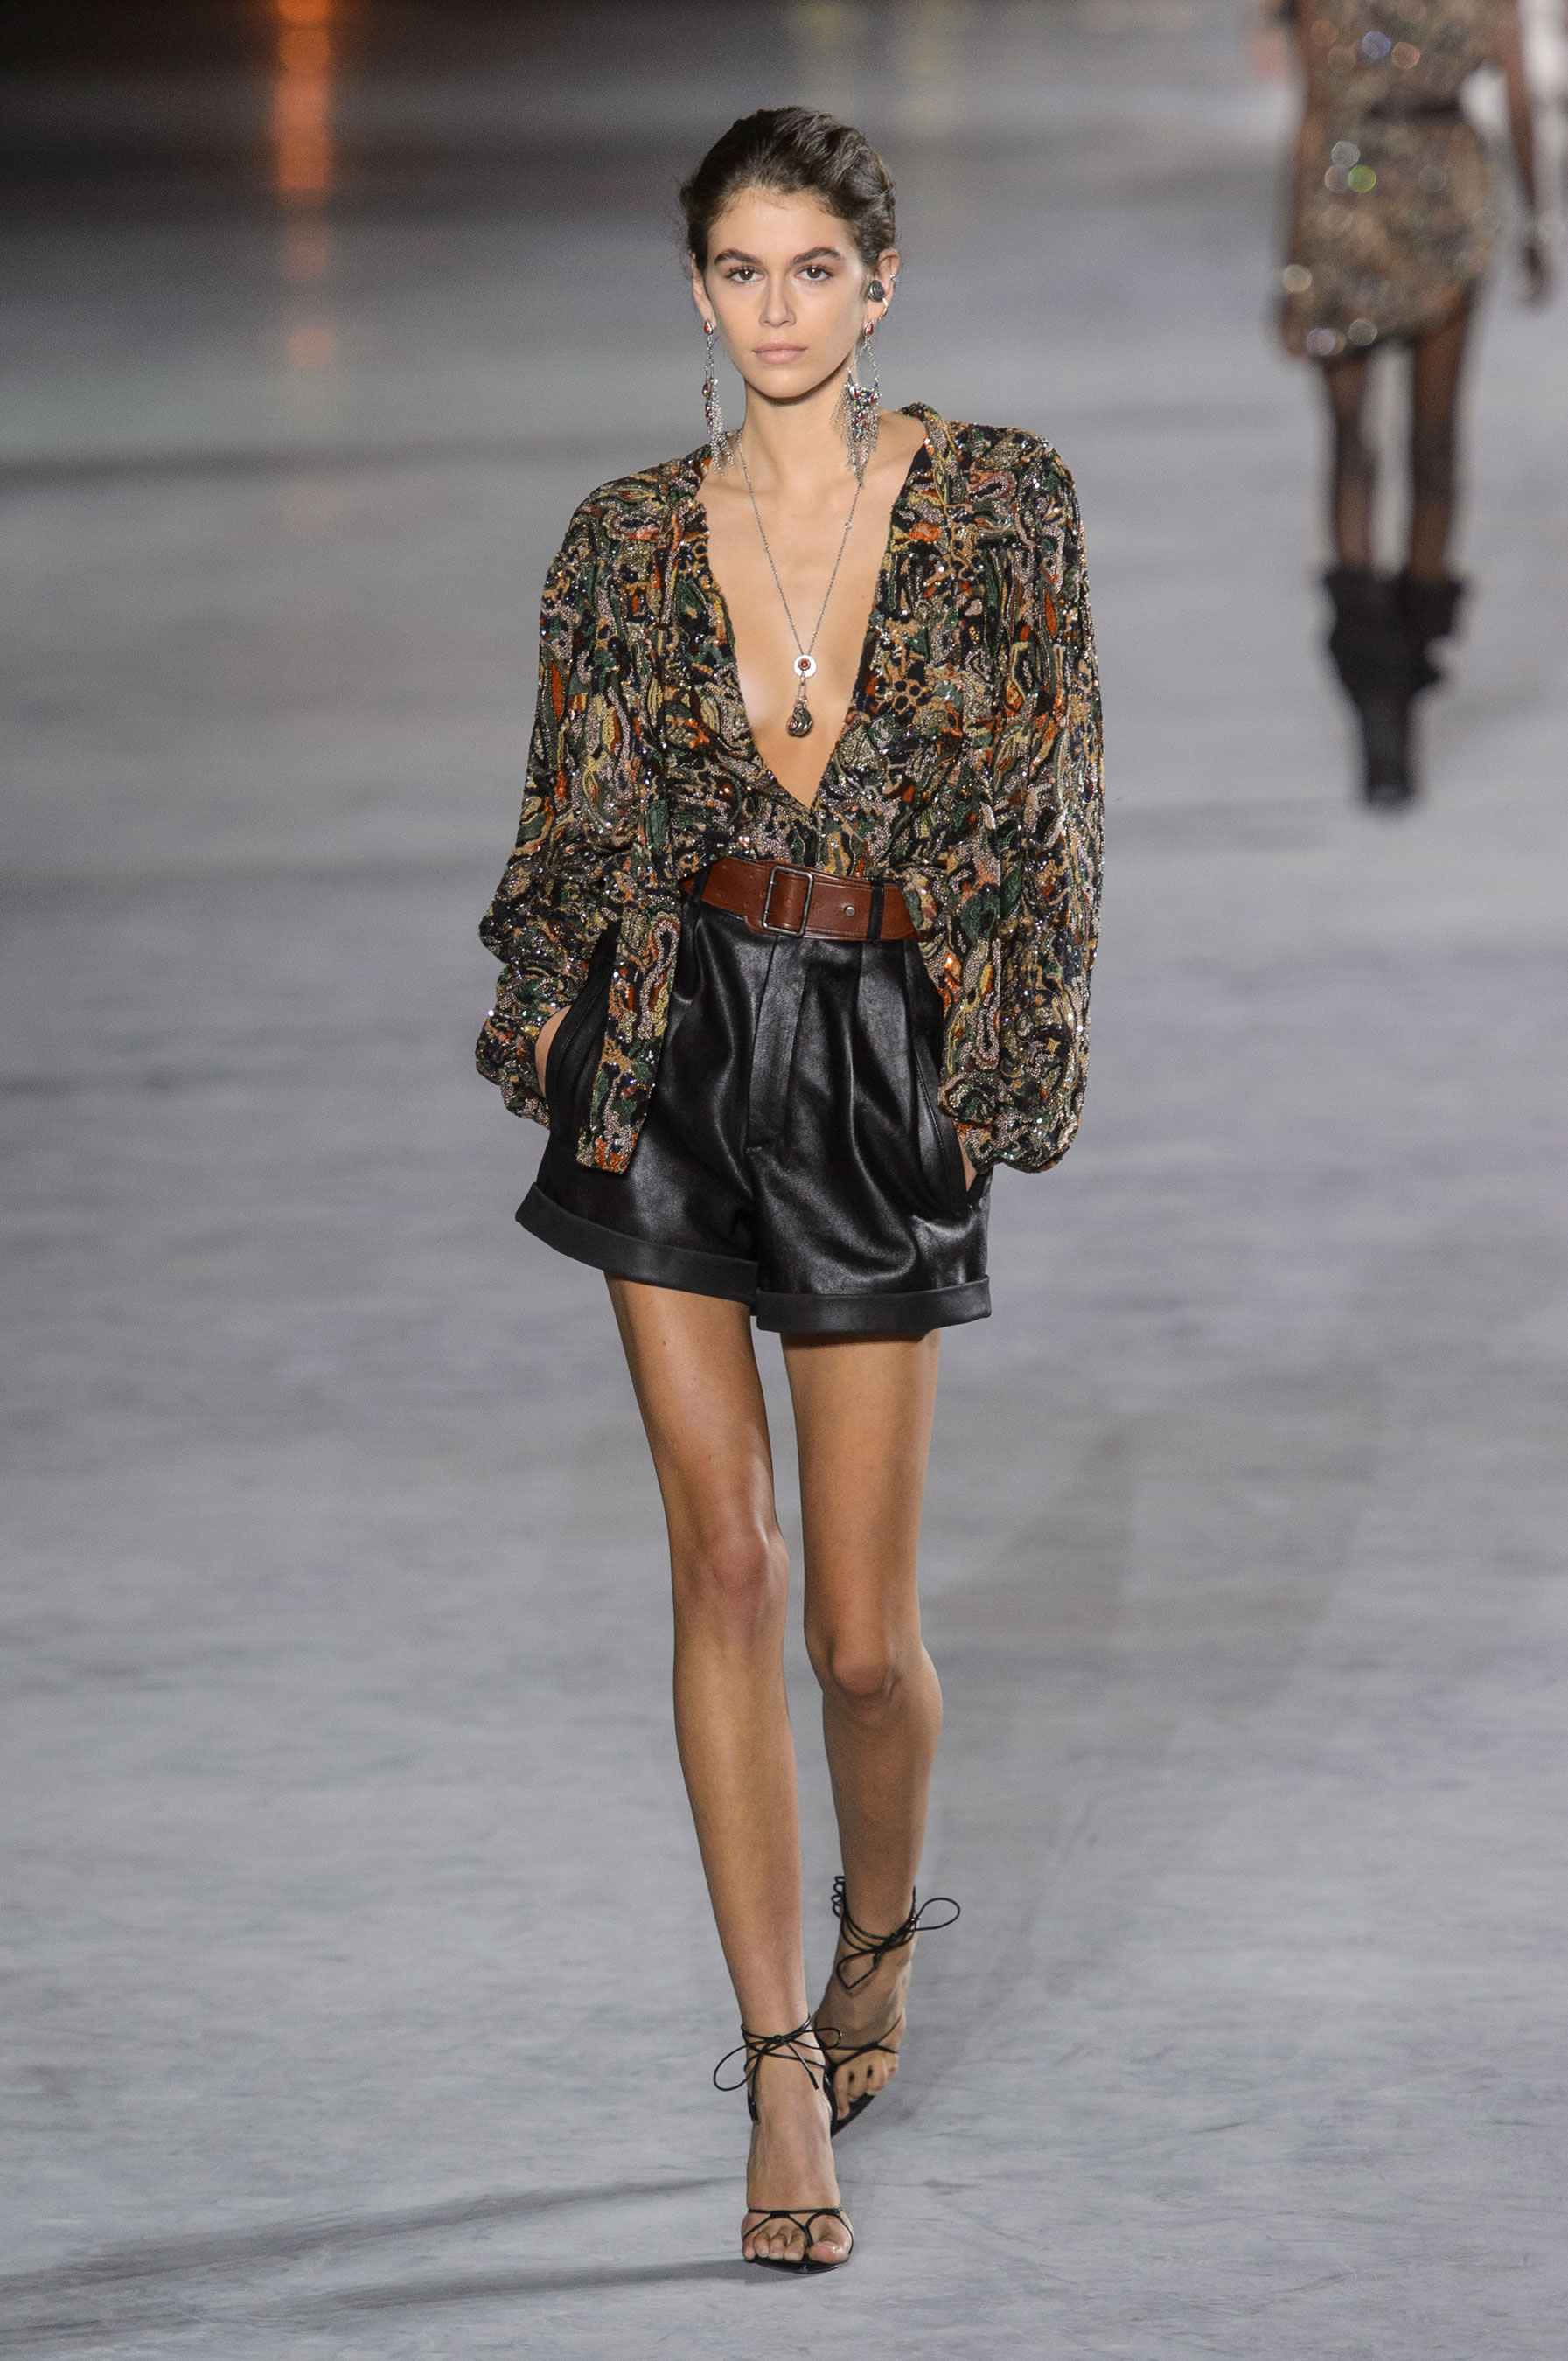 saint laurent dating site Free shipping and free returns on women's saint laurent styles at wwwbarneyscom shop the latest selection from the world's top designers exclusive offers, designer fashion, luxury gifts.